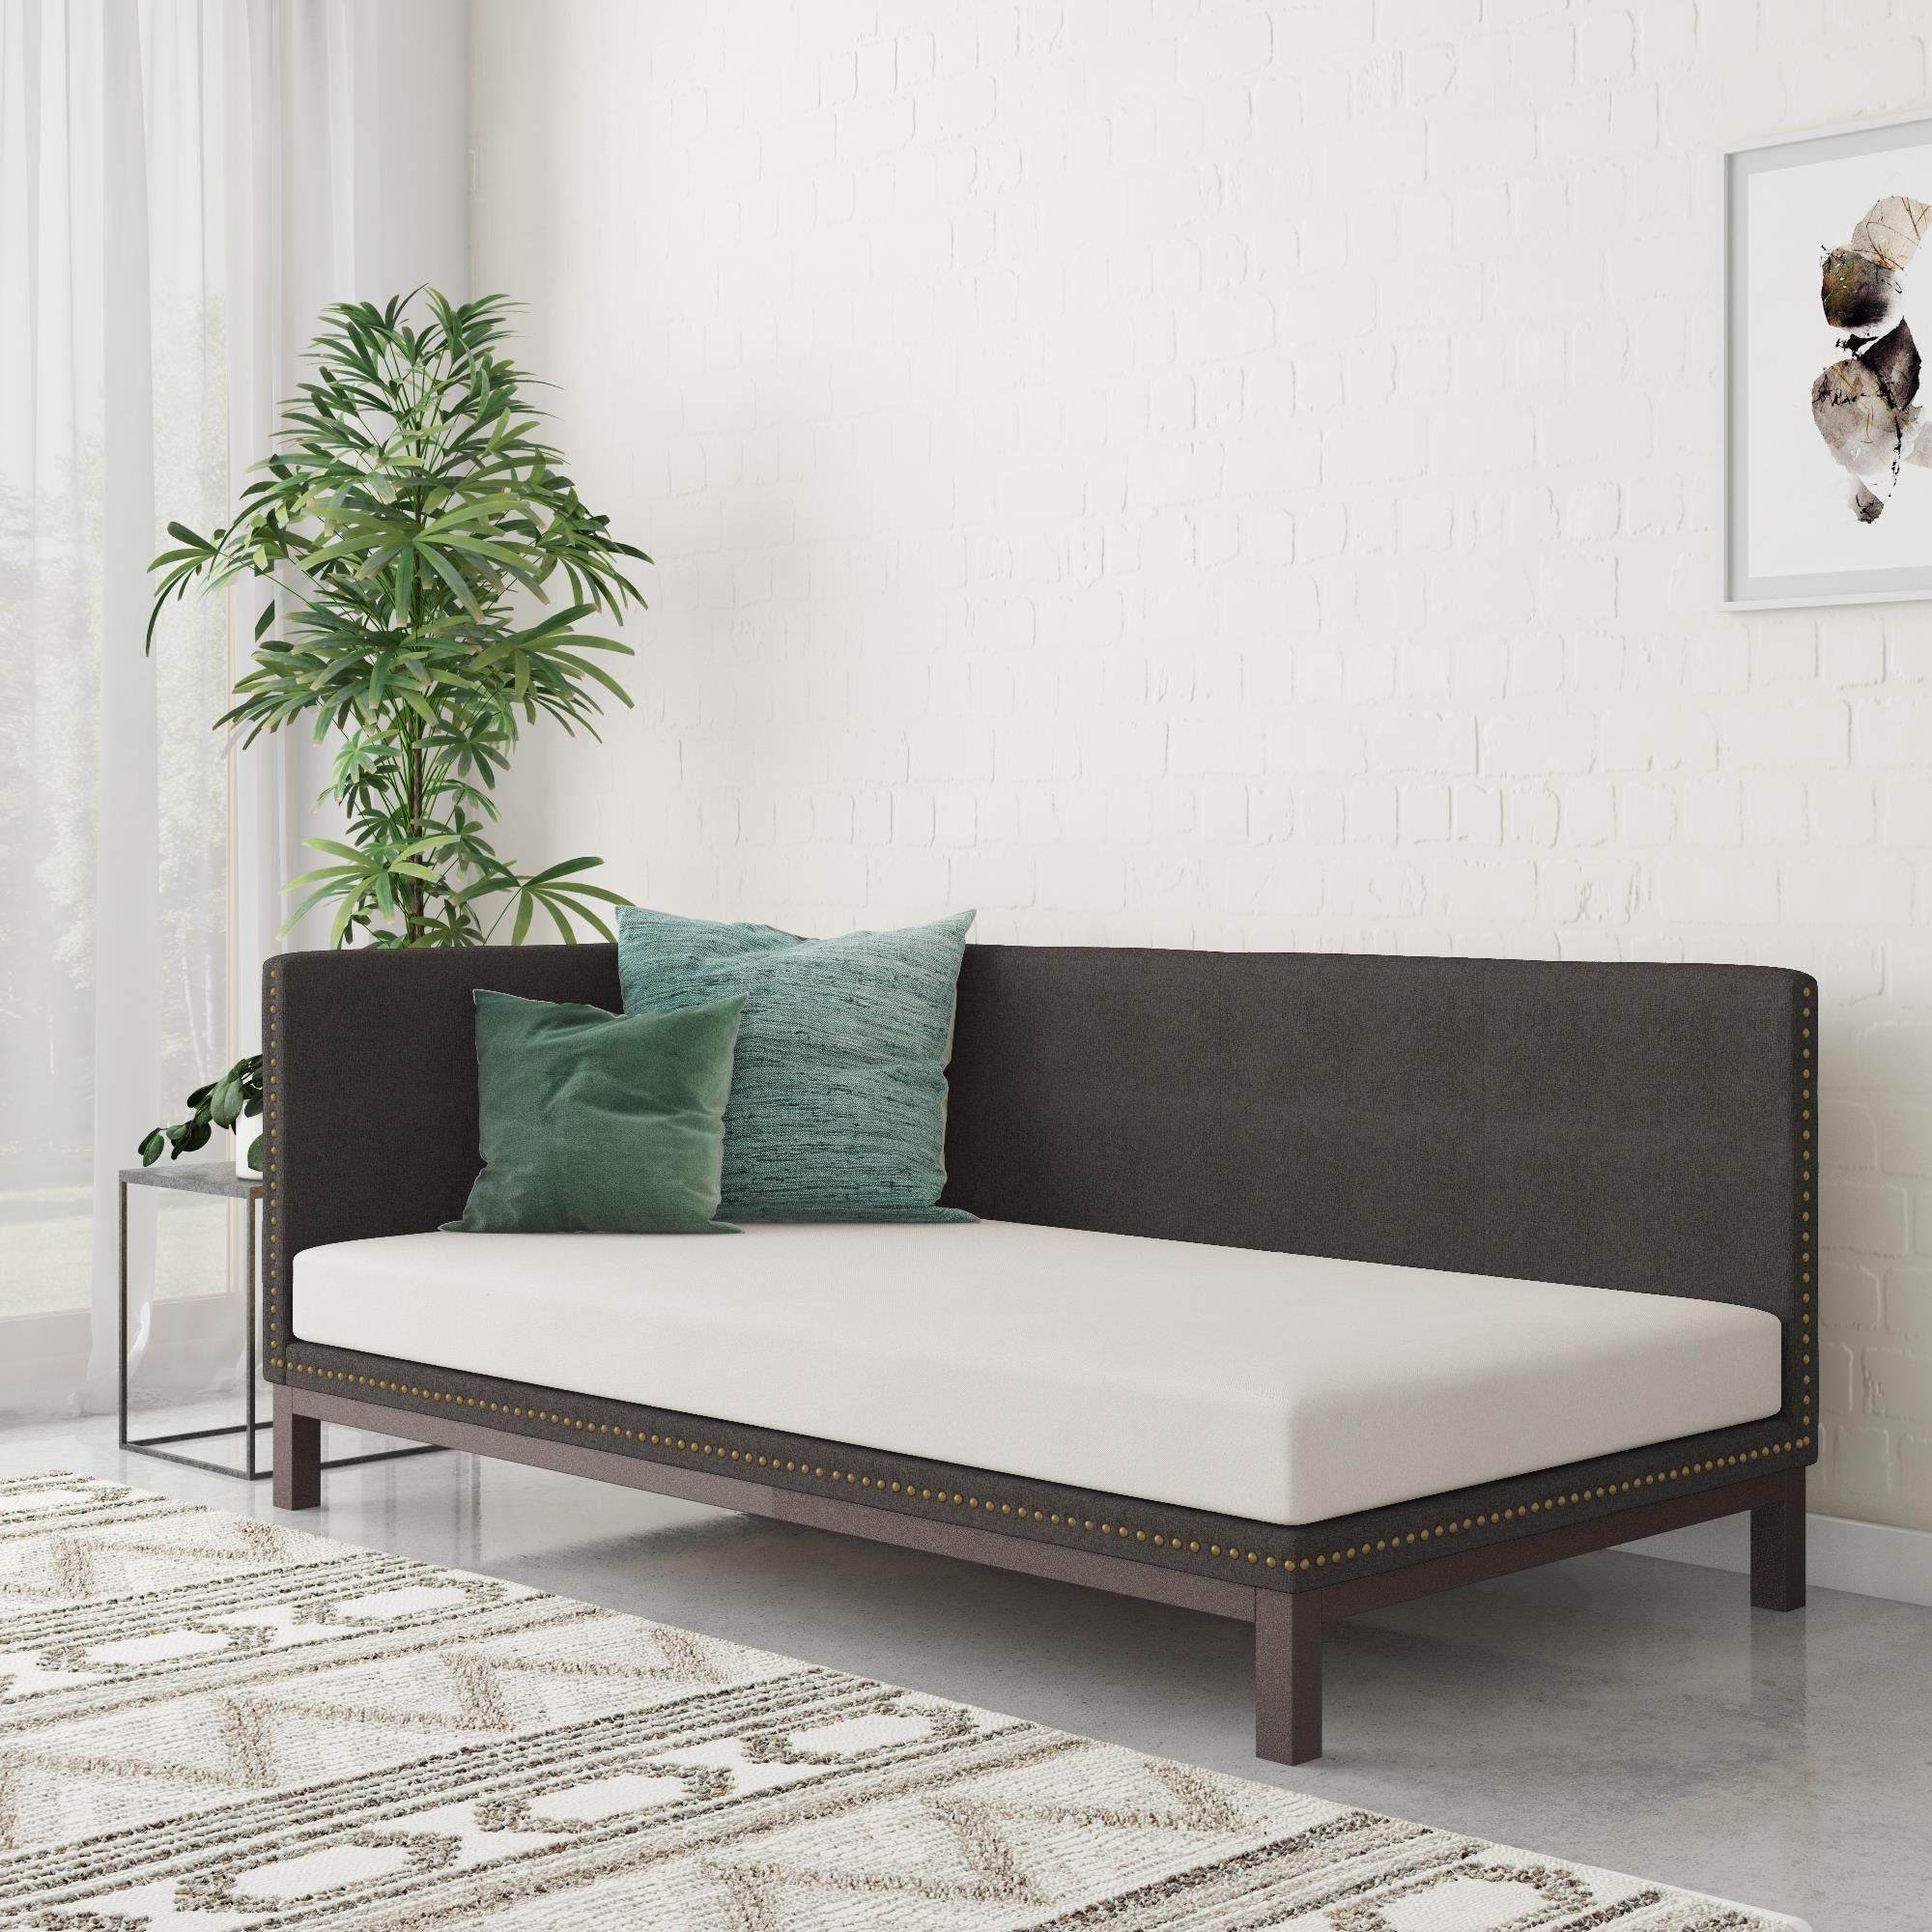 DHP Dale Upholstered Daybed/Sofa Bed Frame, Twin Size, Grey Linen by DHP